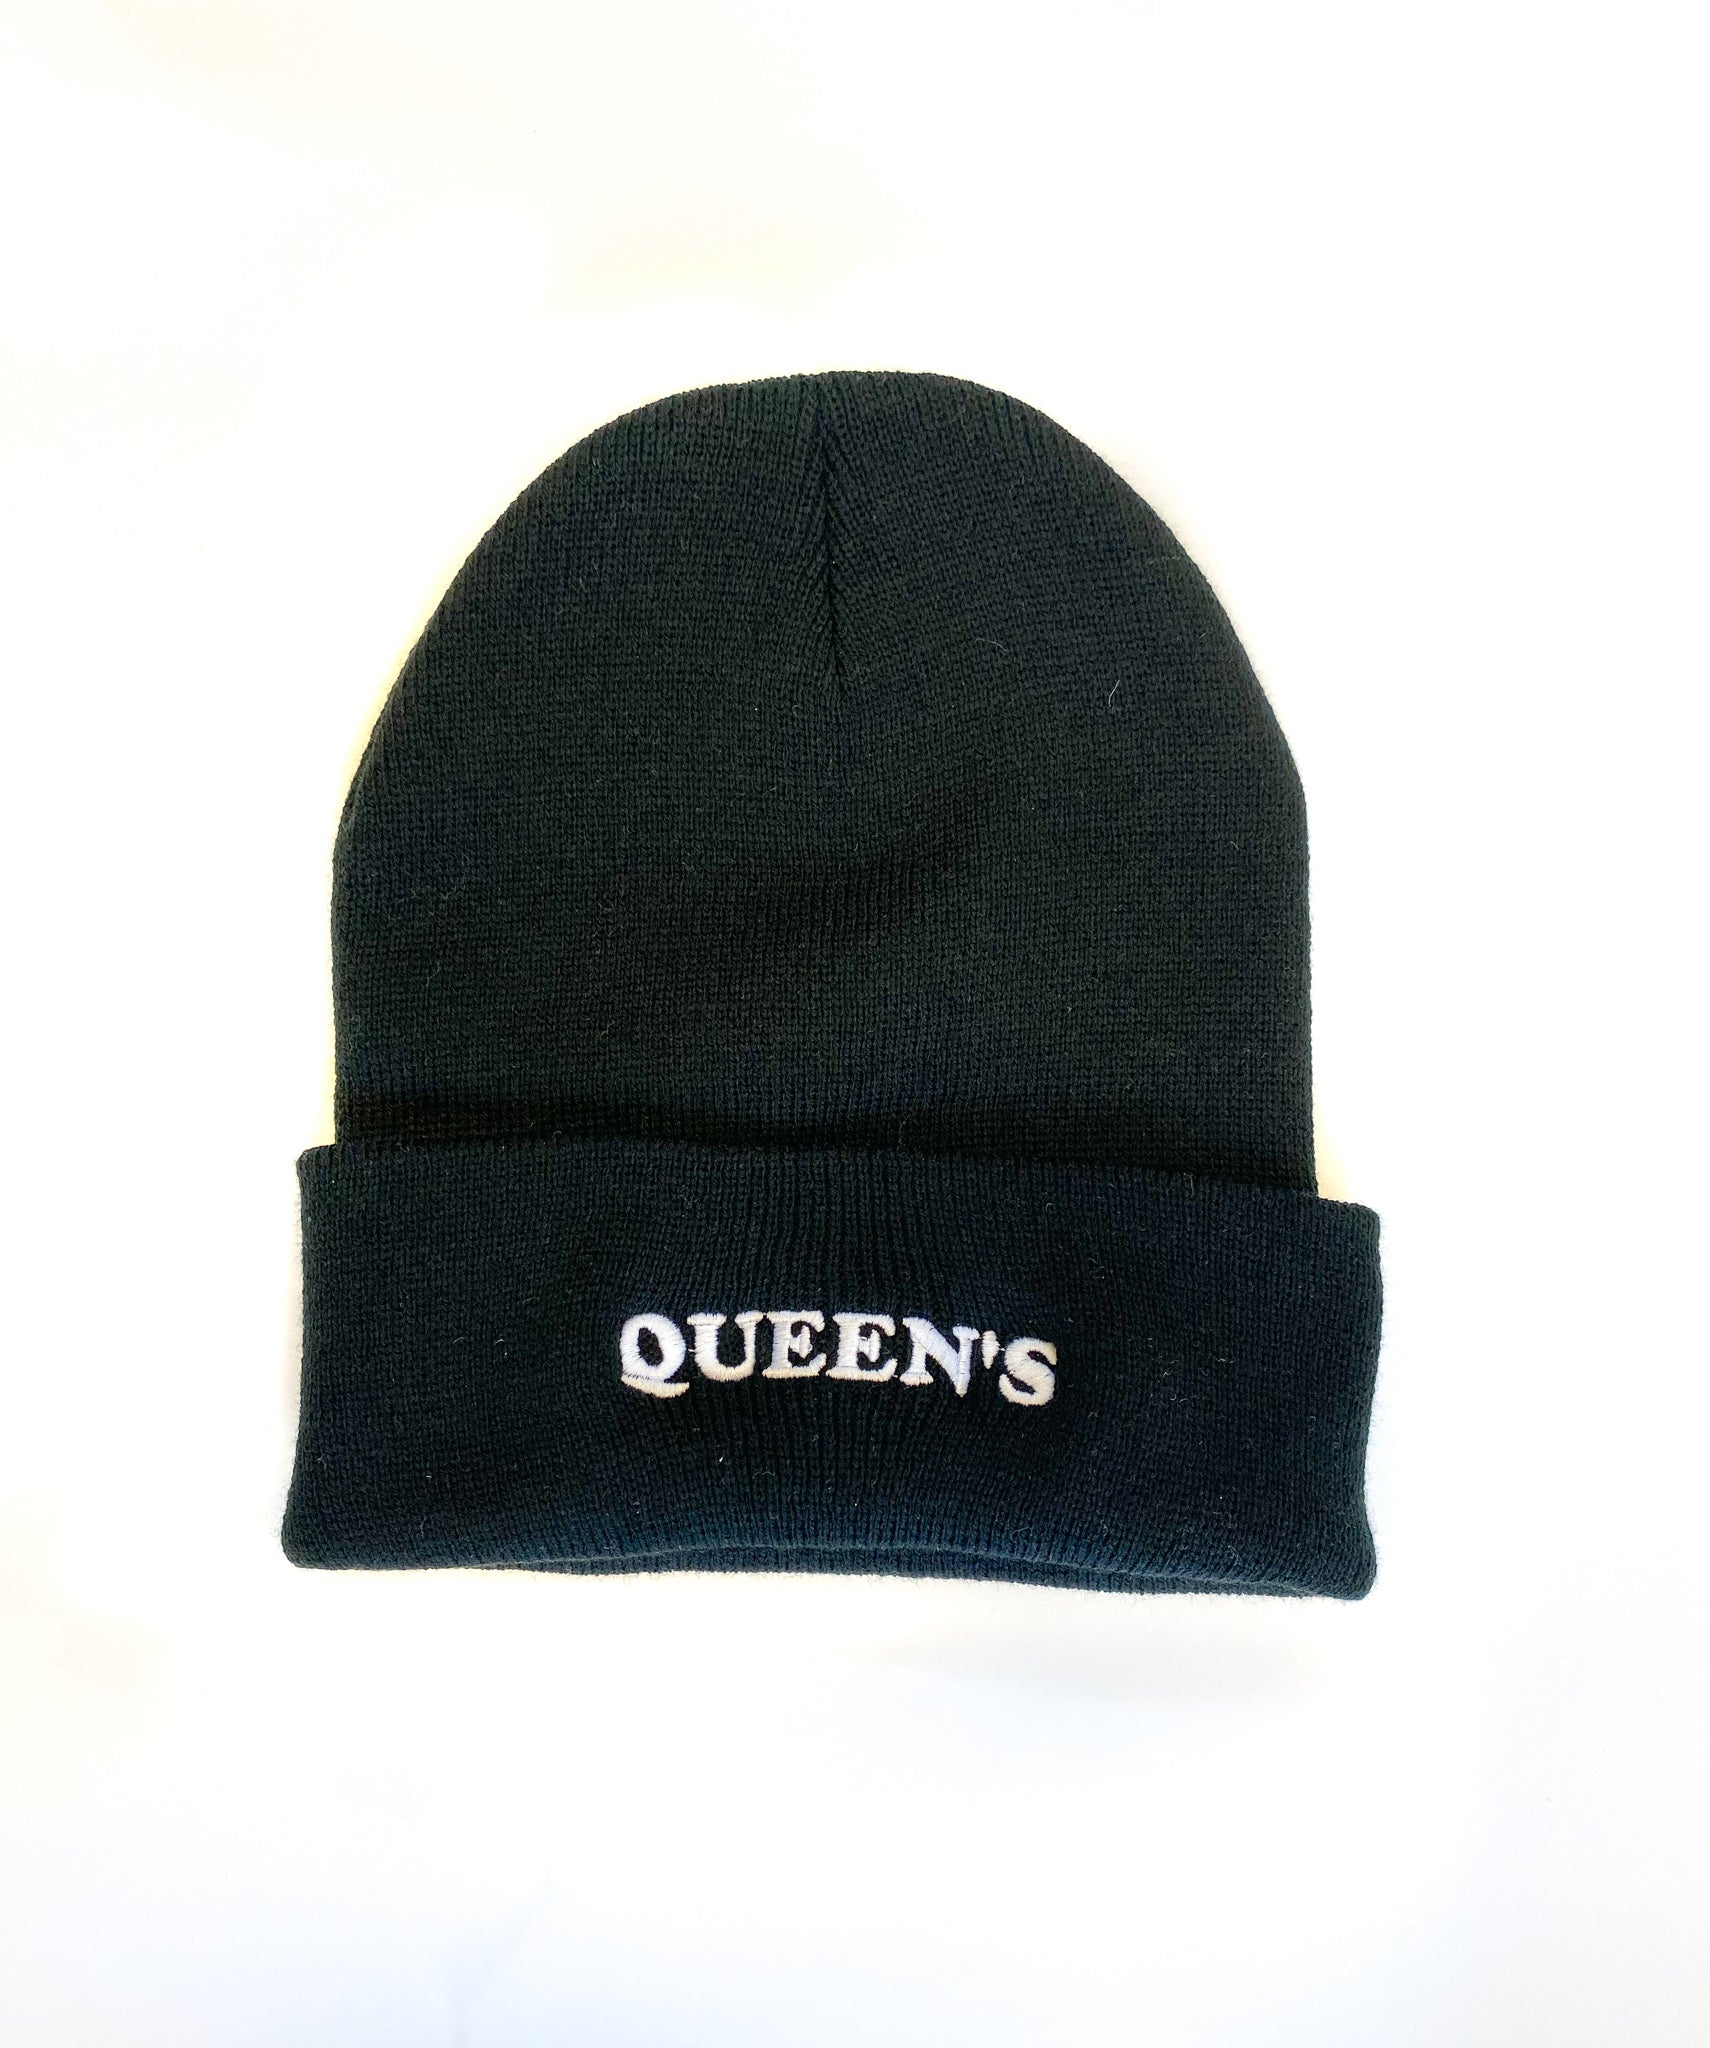 Queen's Toque